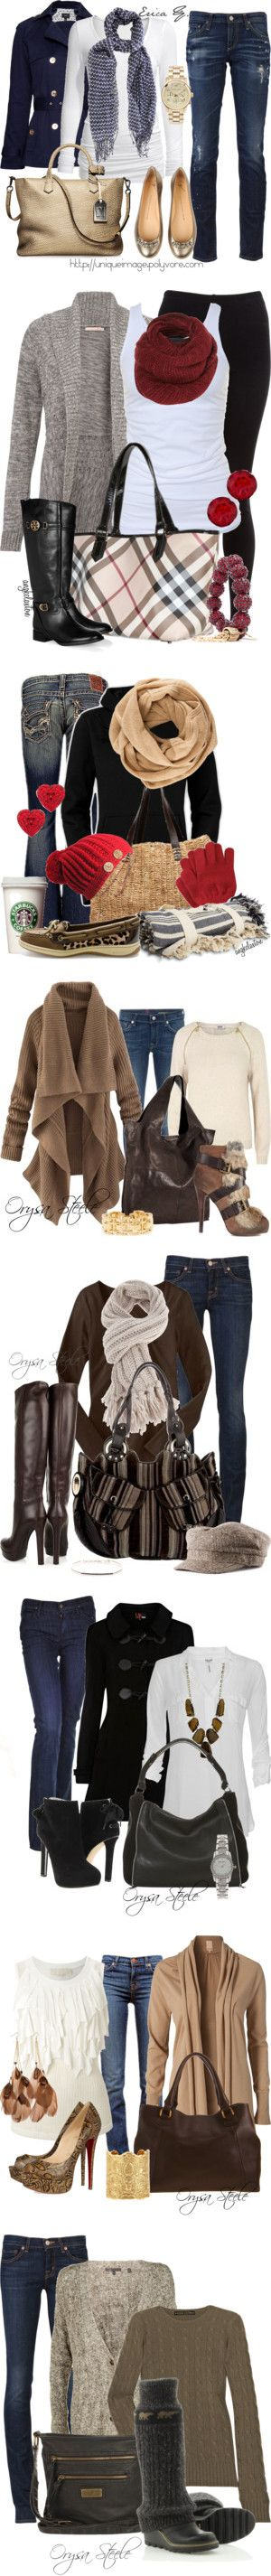 """Winter time"": Fall Clothing, Winter Time, Outfit Idea, Fall Time, Winter Outfit, Winter Styles, Fall Outfit, Cute Outfit, Cold Weather"